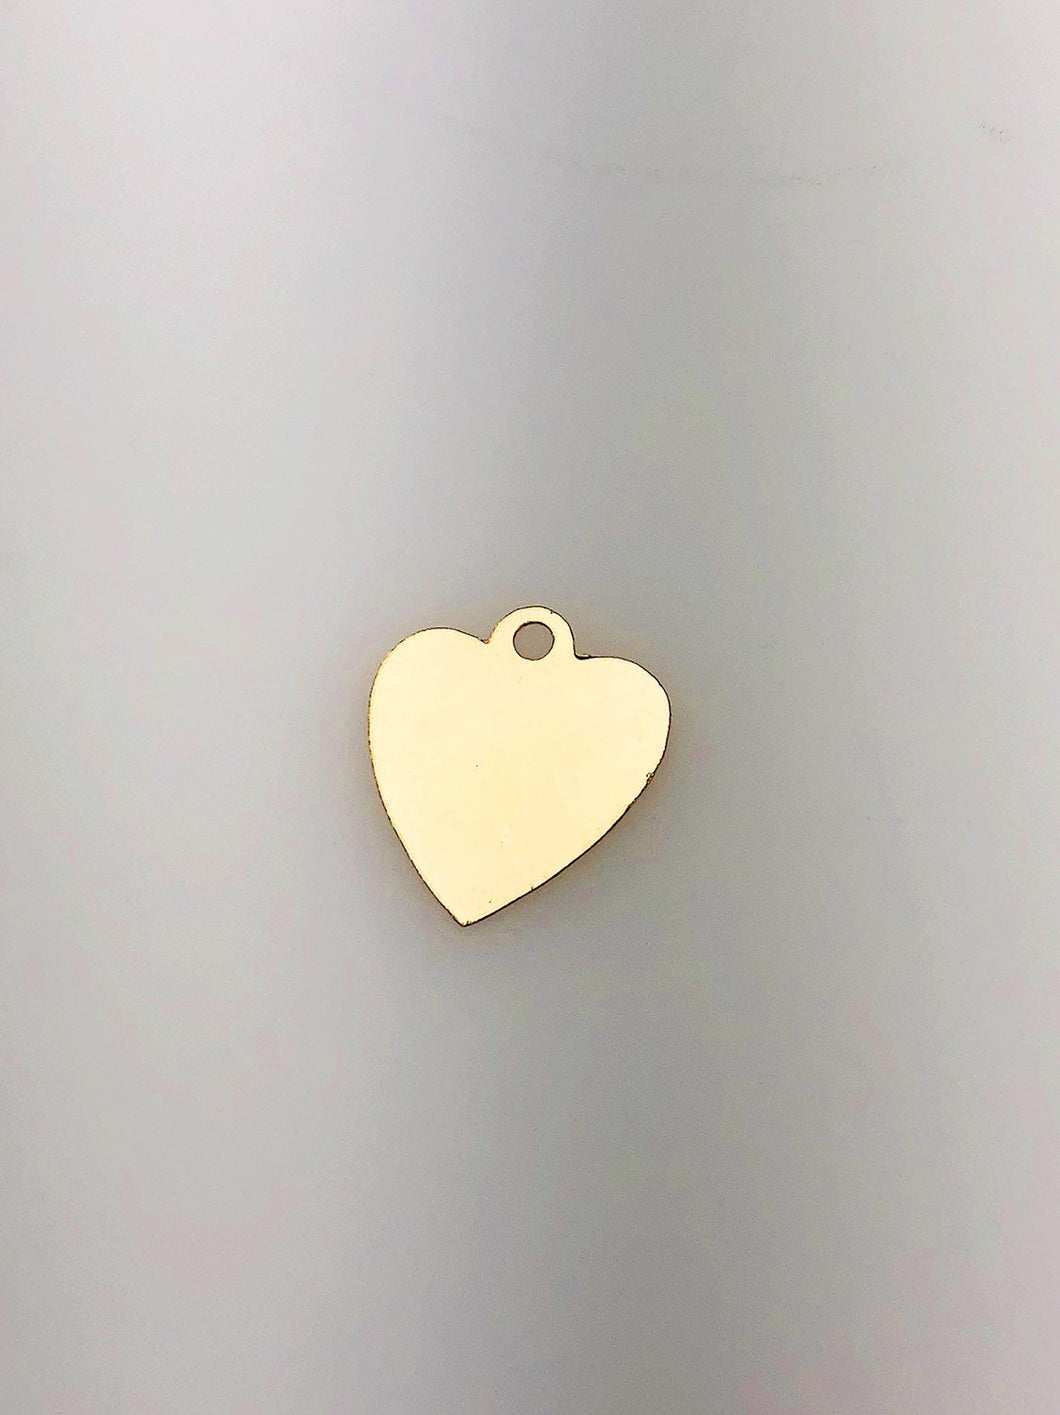 14K Gold Fill Heart Tag Charm w/ Ring, 13.4mm, Made in USA - 825